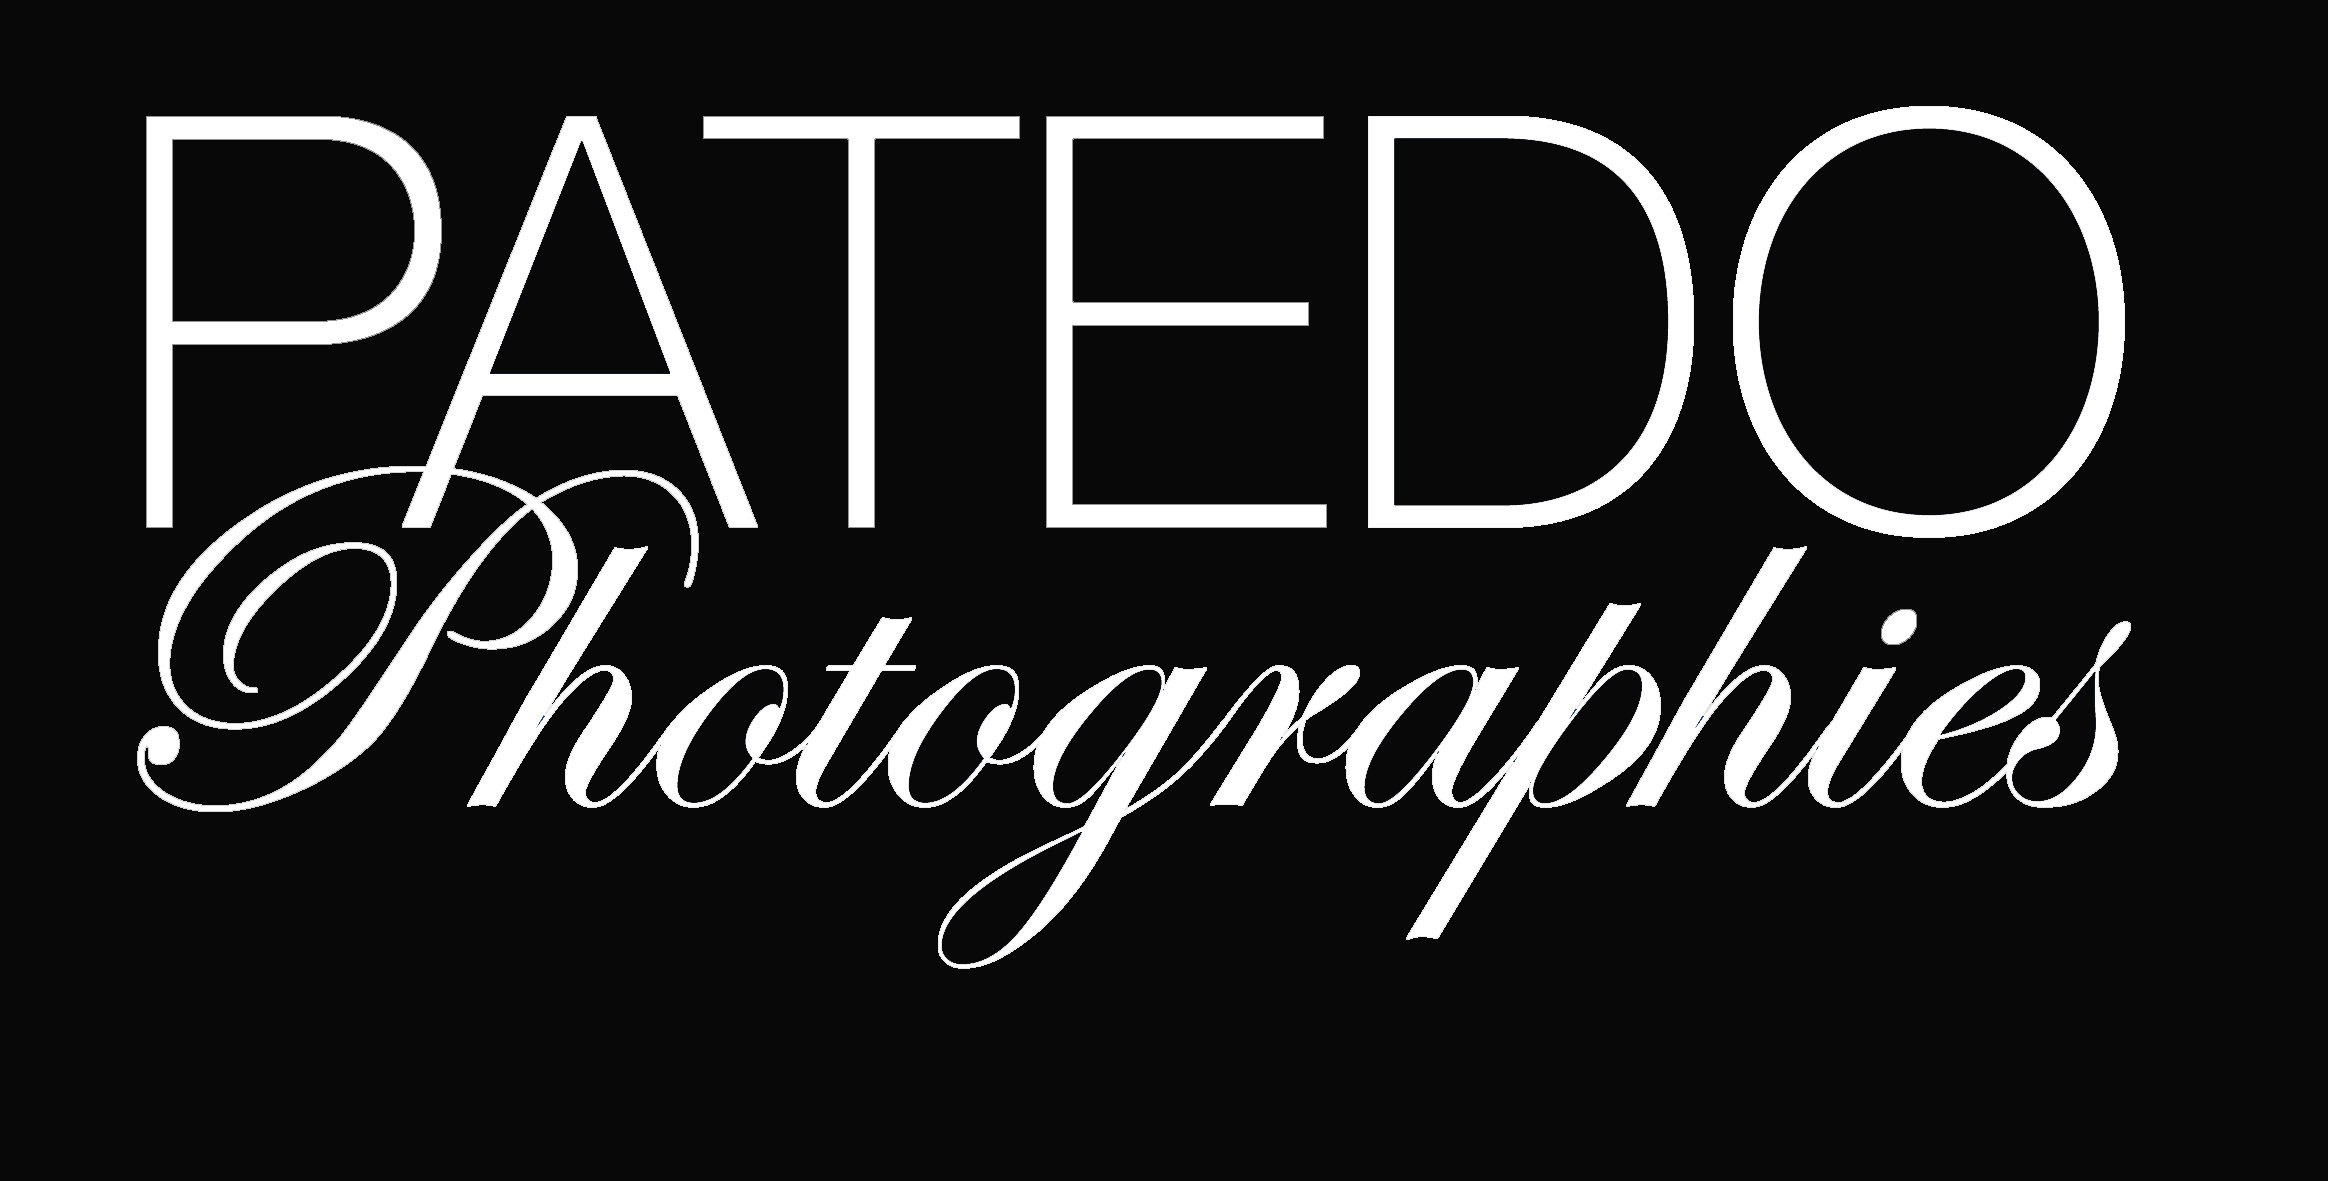 Patedo Photographies